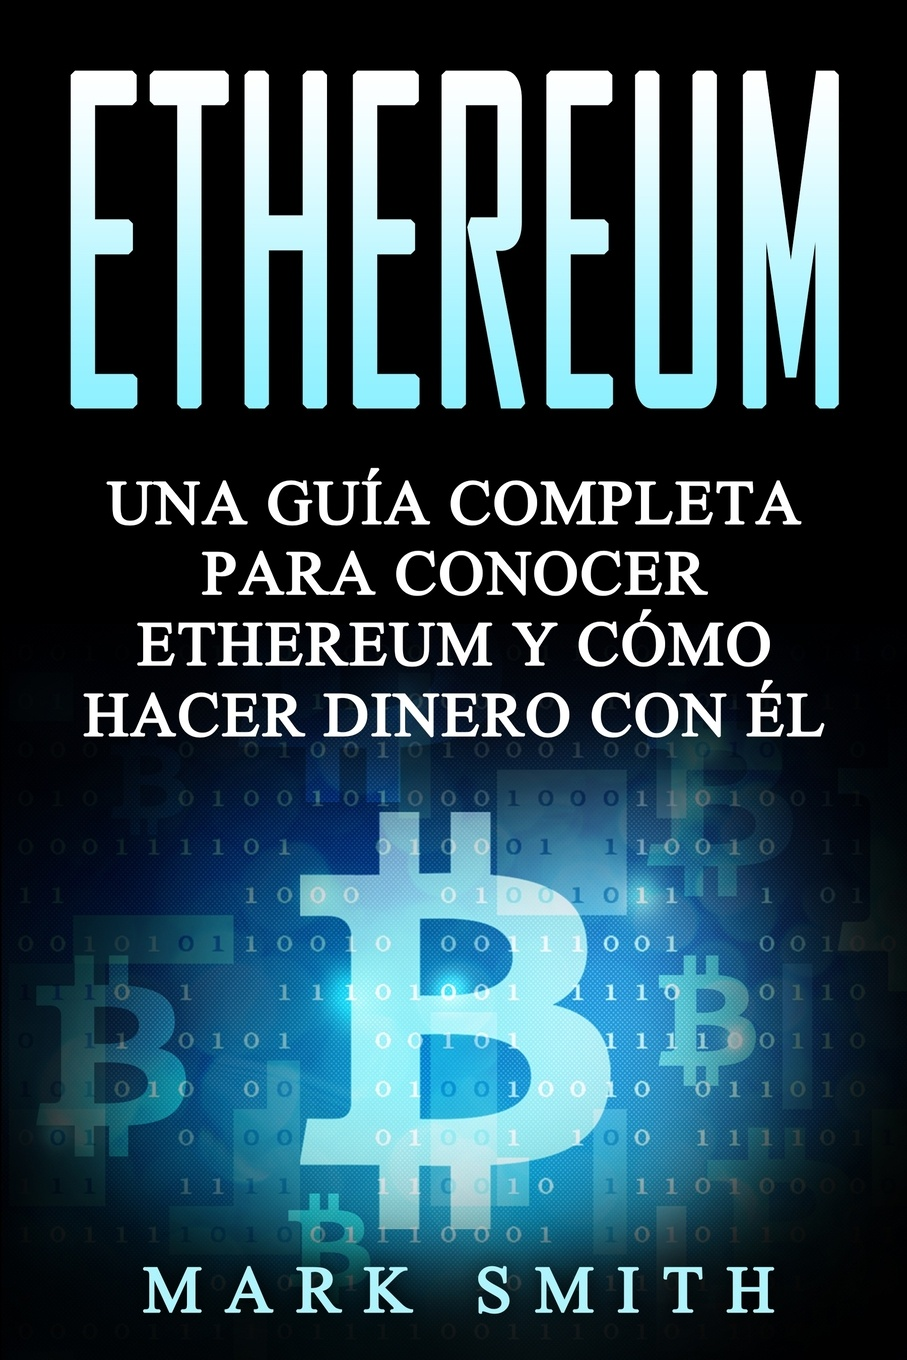 Mark Smith Ethereum. Una Guia Completa para Conocer Ethereum y Como Hacer Dinero Con El (Libro en Espanol/Ethereum Book Spanish Version) цены онлайн